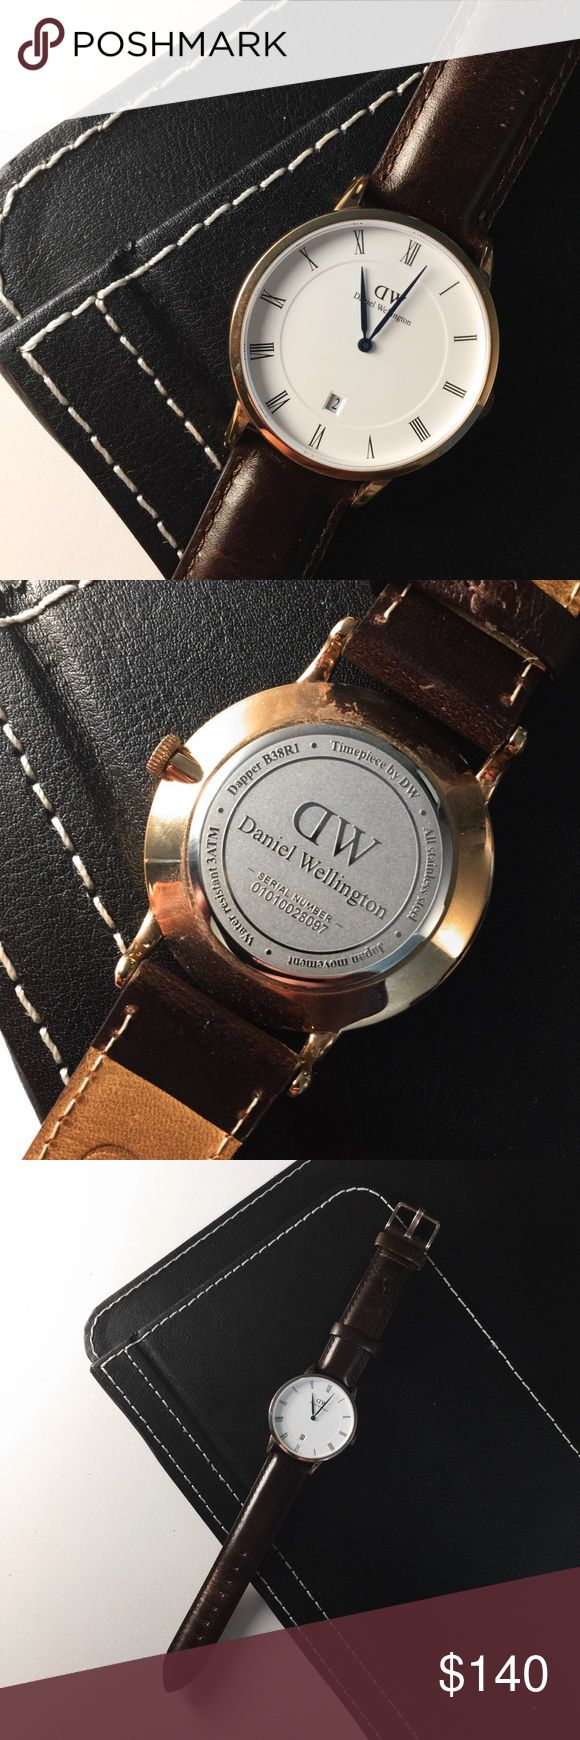 Daniel Wellington SALE ✨✨ Watch has only been worn once. It is brand new with no scratches on the glass.    This 38 mm watch from the Dapper Collection is rose gold and has been enriched with deep blue hands, Roman numerals and date with the brown St Mawes leather strap, made from Italian leather, and completes the look of a timeless and sophisticated watch.  PRICE IS FINAL 🔥 Daniel Wellington Accessories Watches